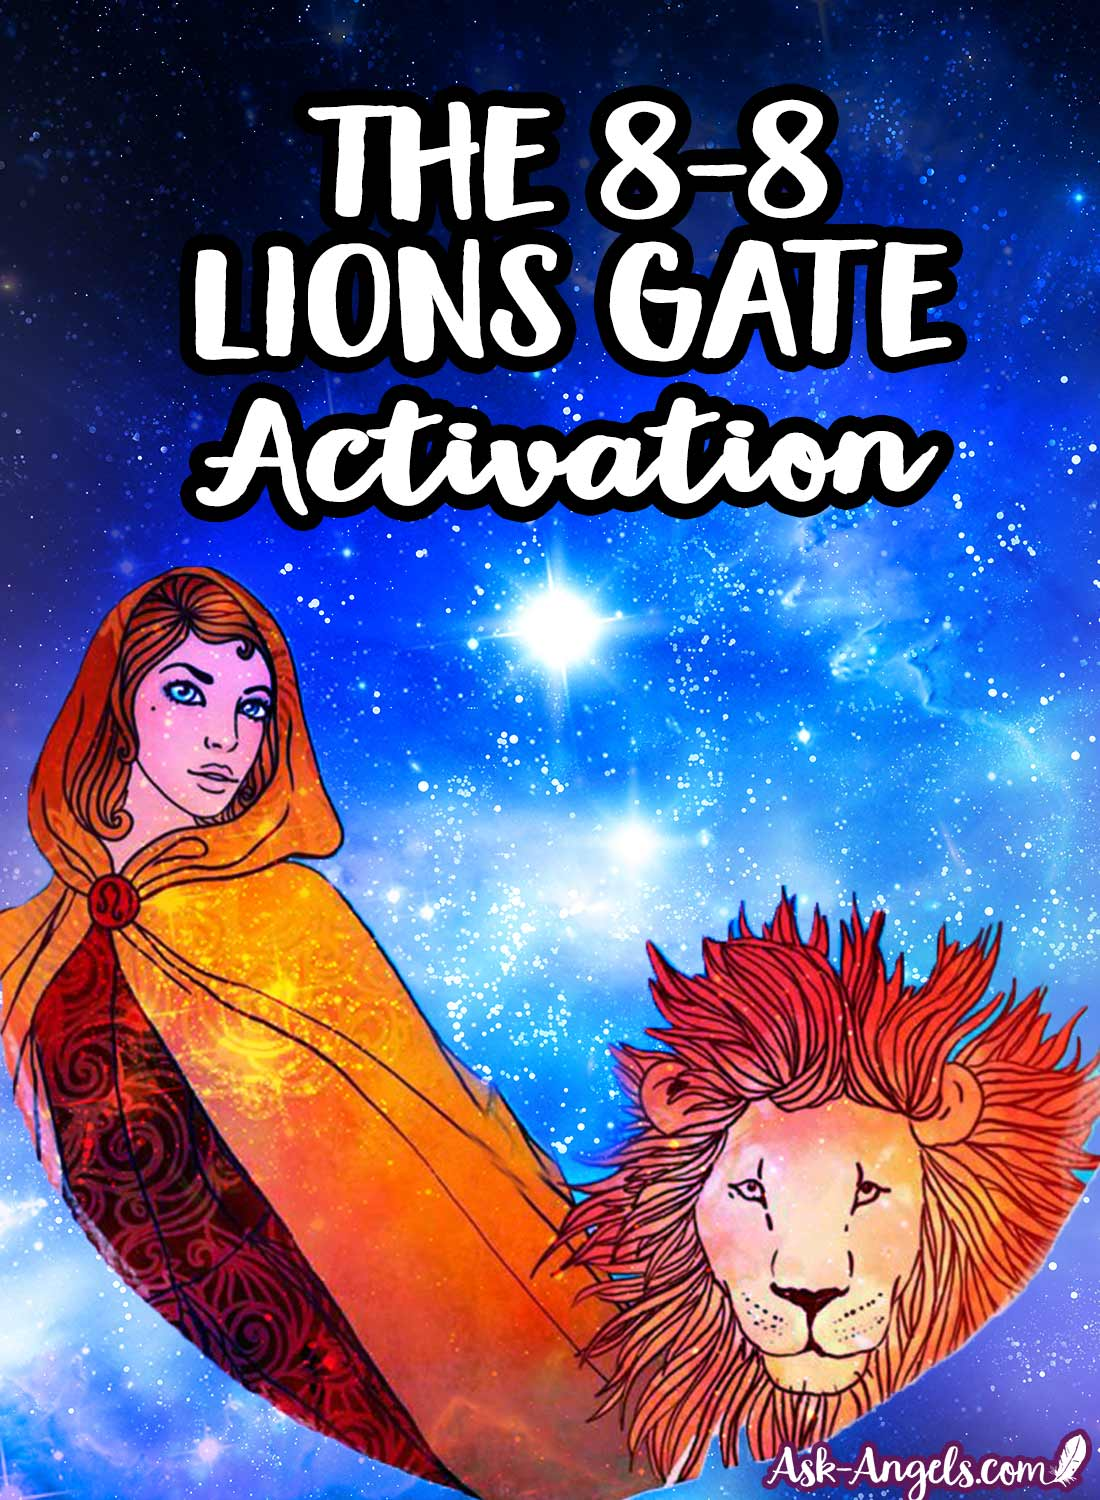 Lions Gate Activation